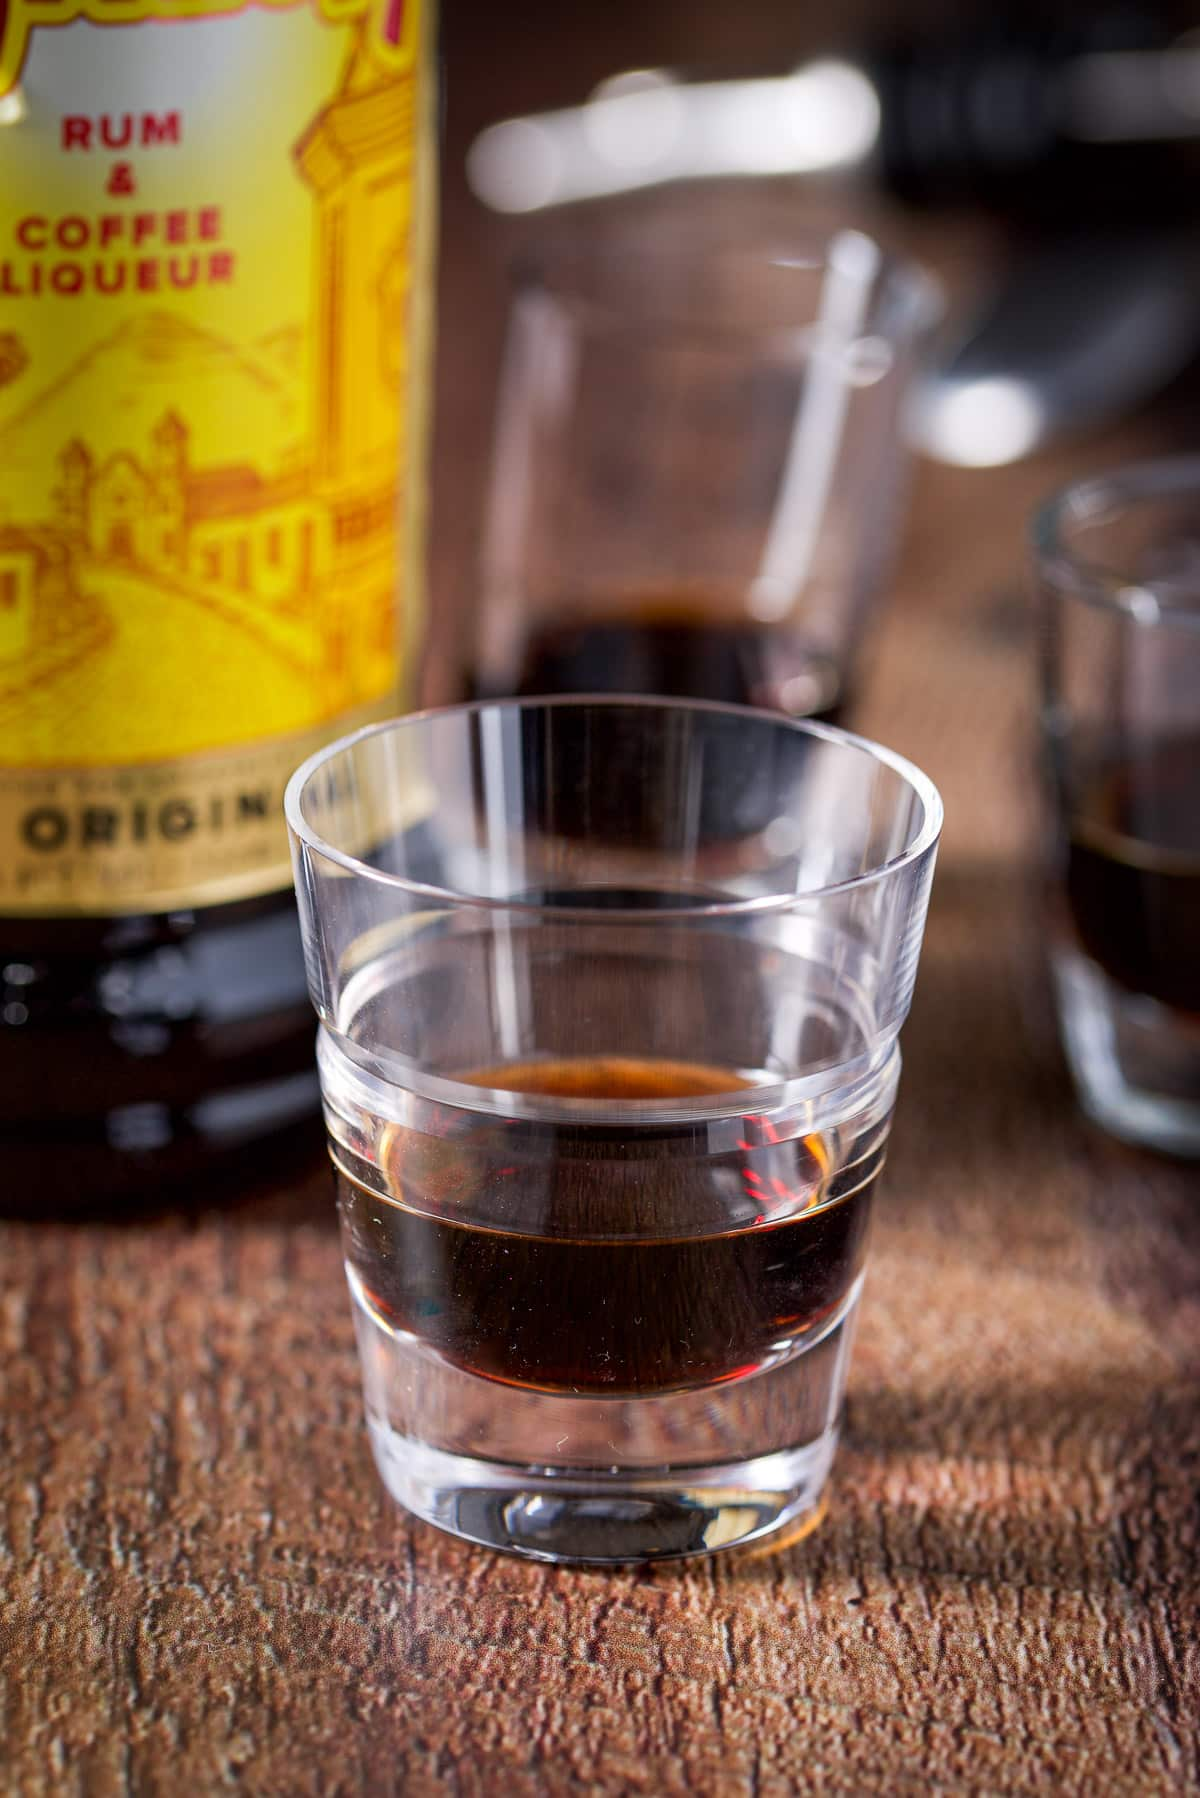 A beveled glass in front with Kahlua in it with the other glasses and bottles in the background